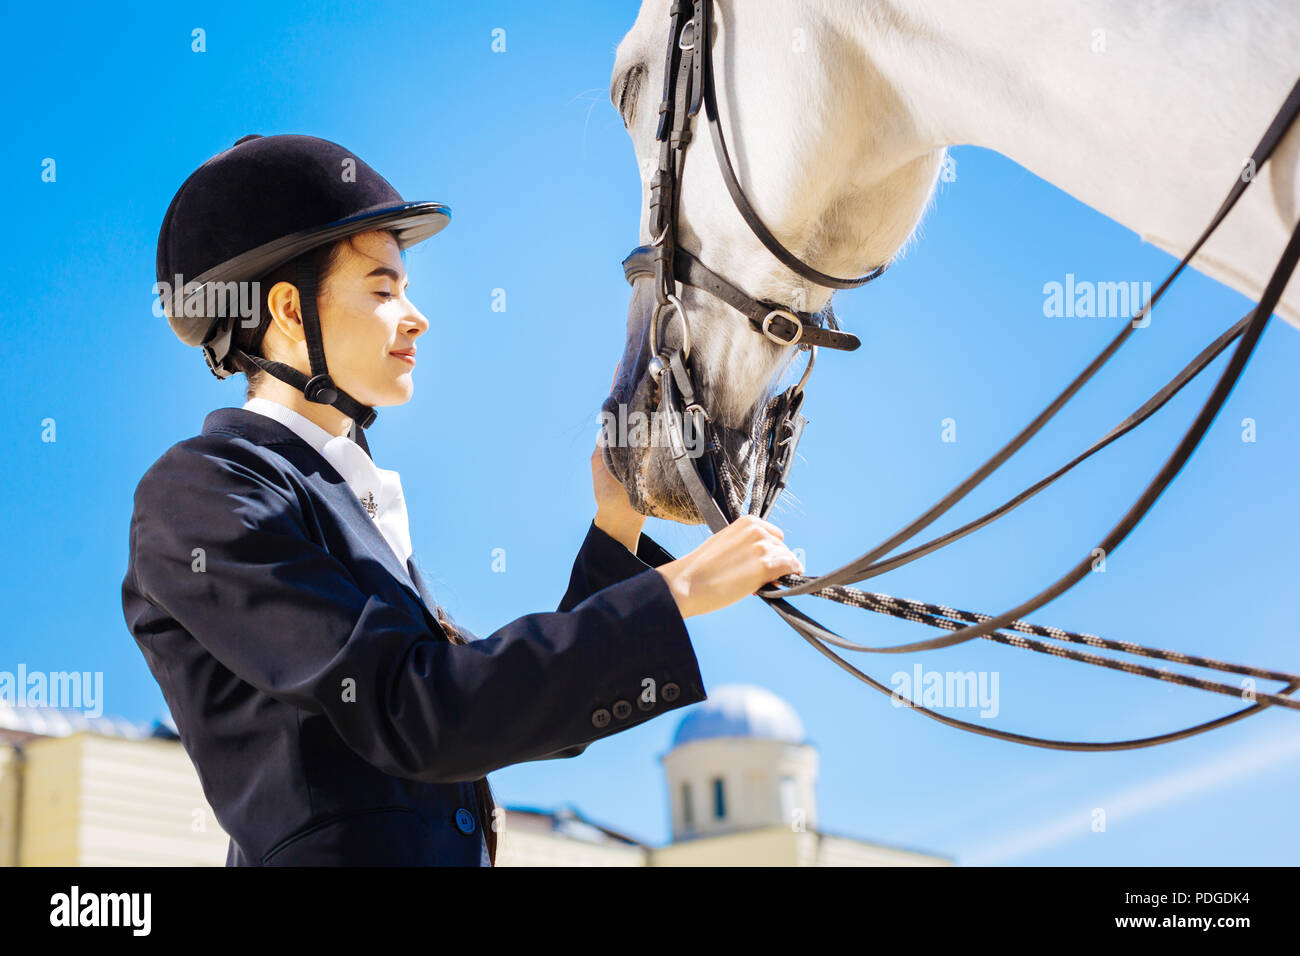 Caring loving horsewoman calming her white horse Stock Photo